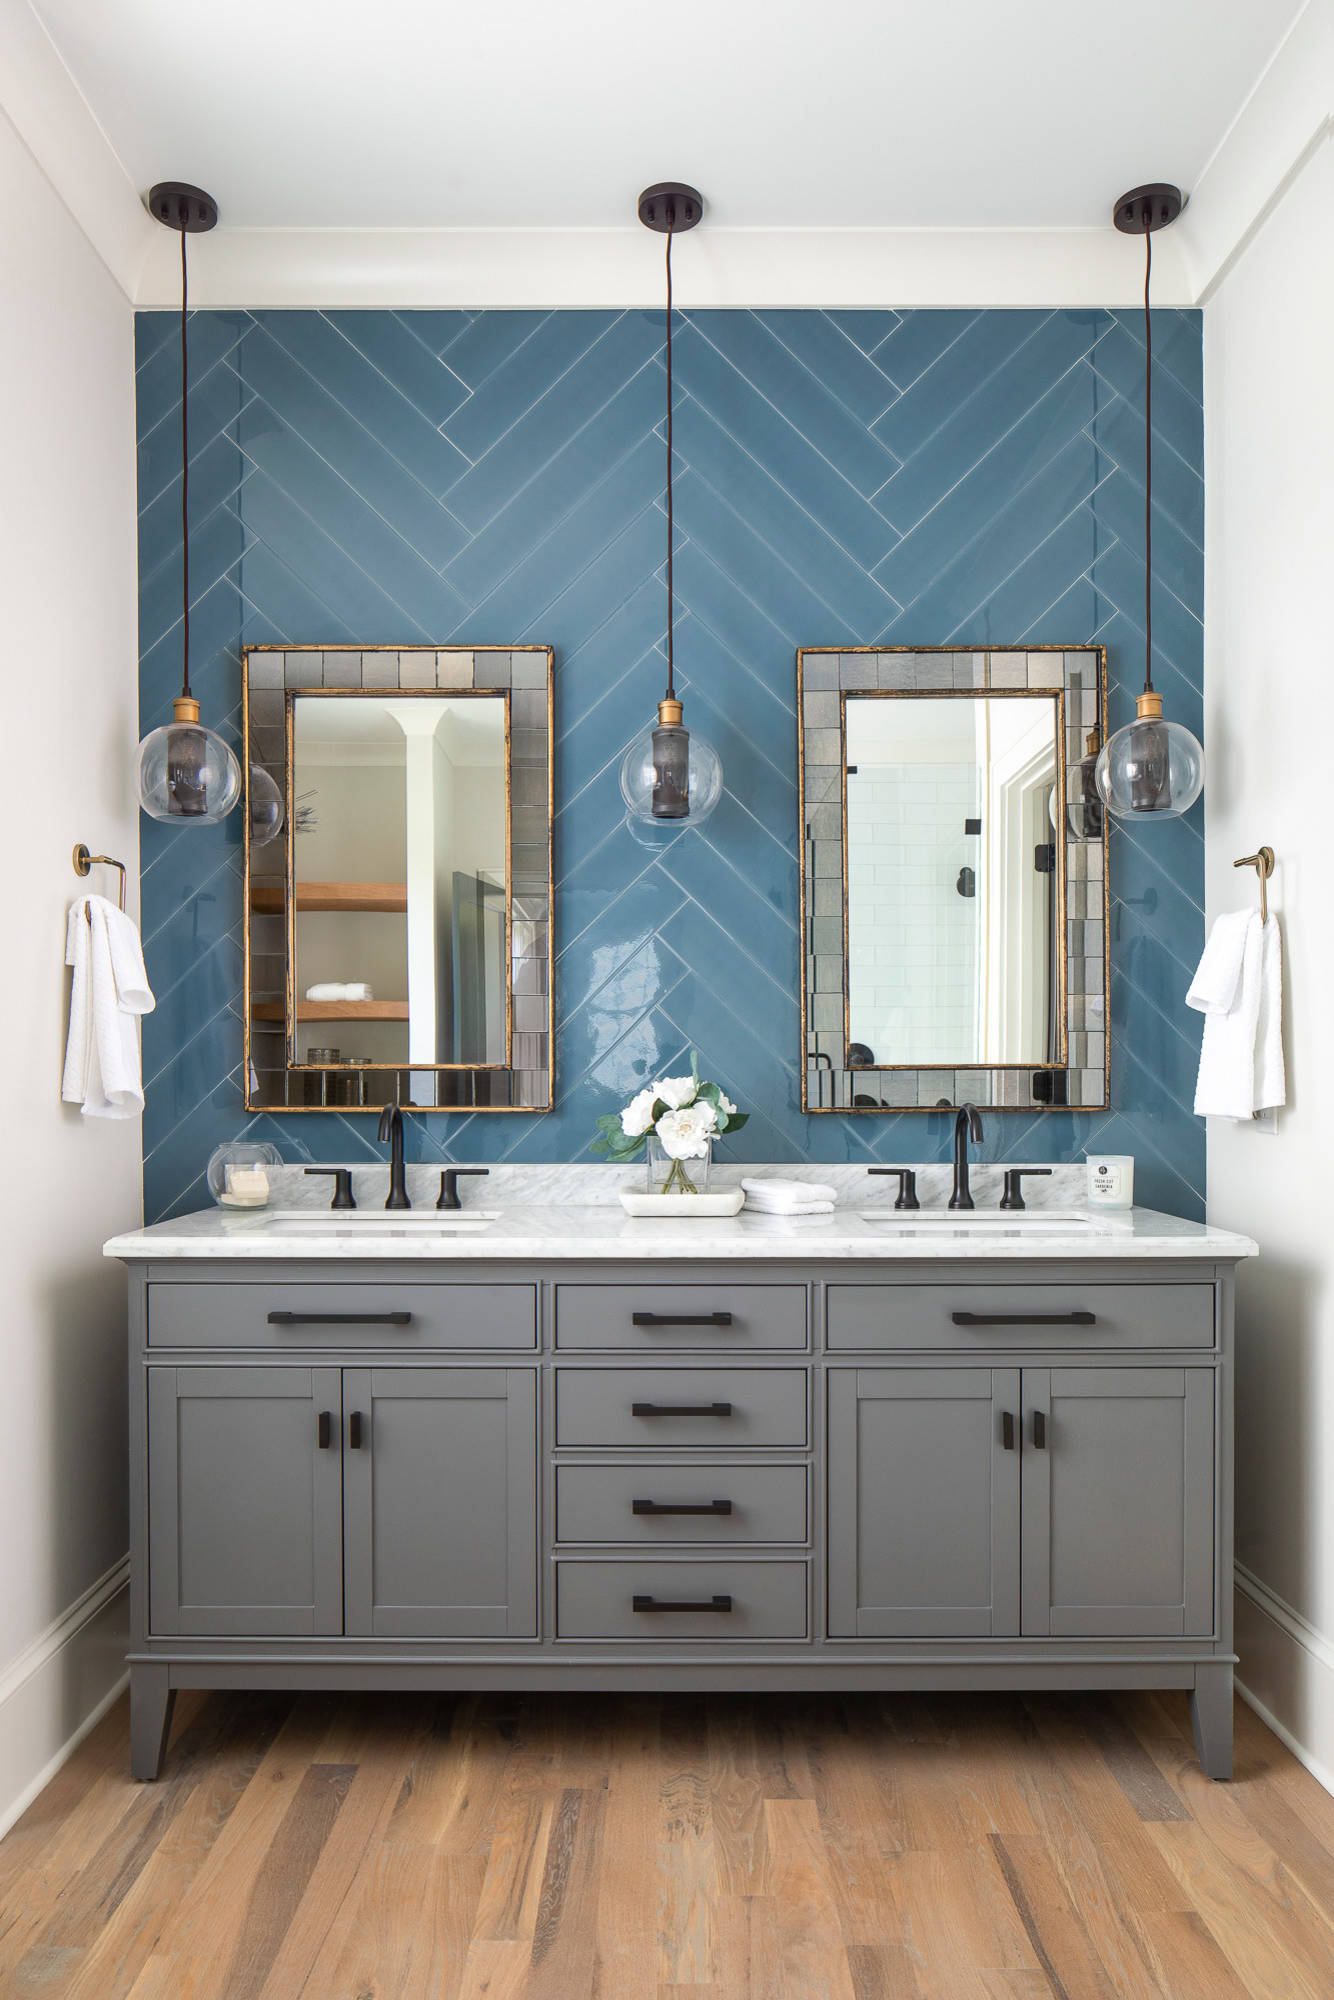 75 Beautiful Transitional Light Wood Floor Bathroom Pictures Ideas February 2021 Houzz